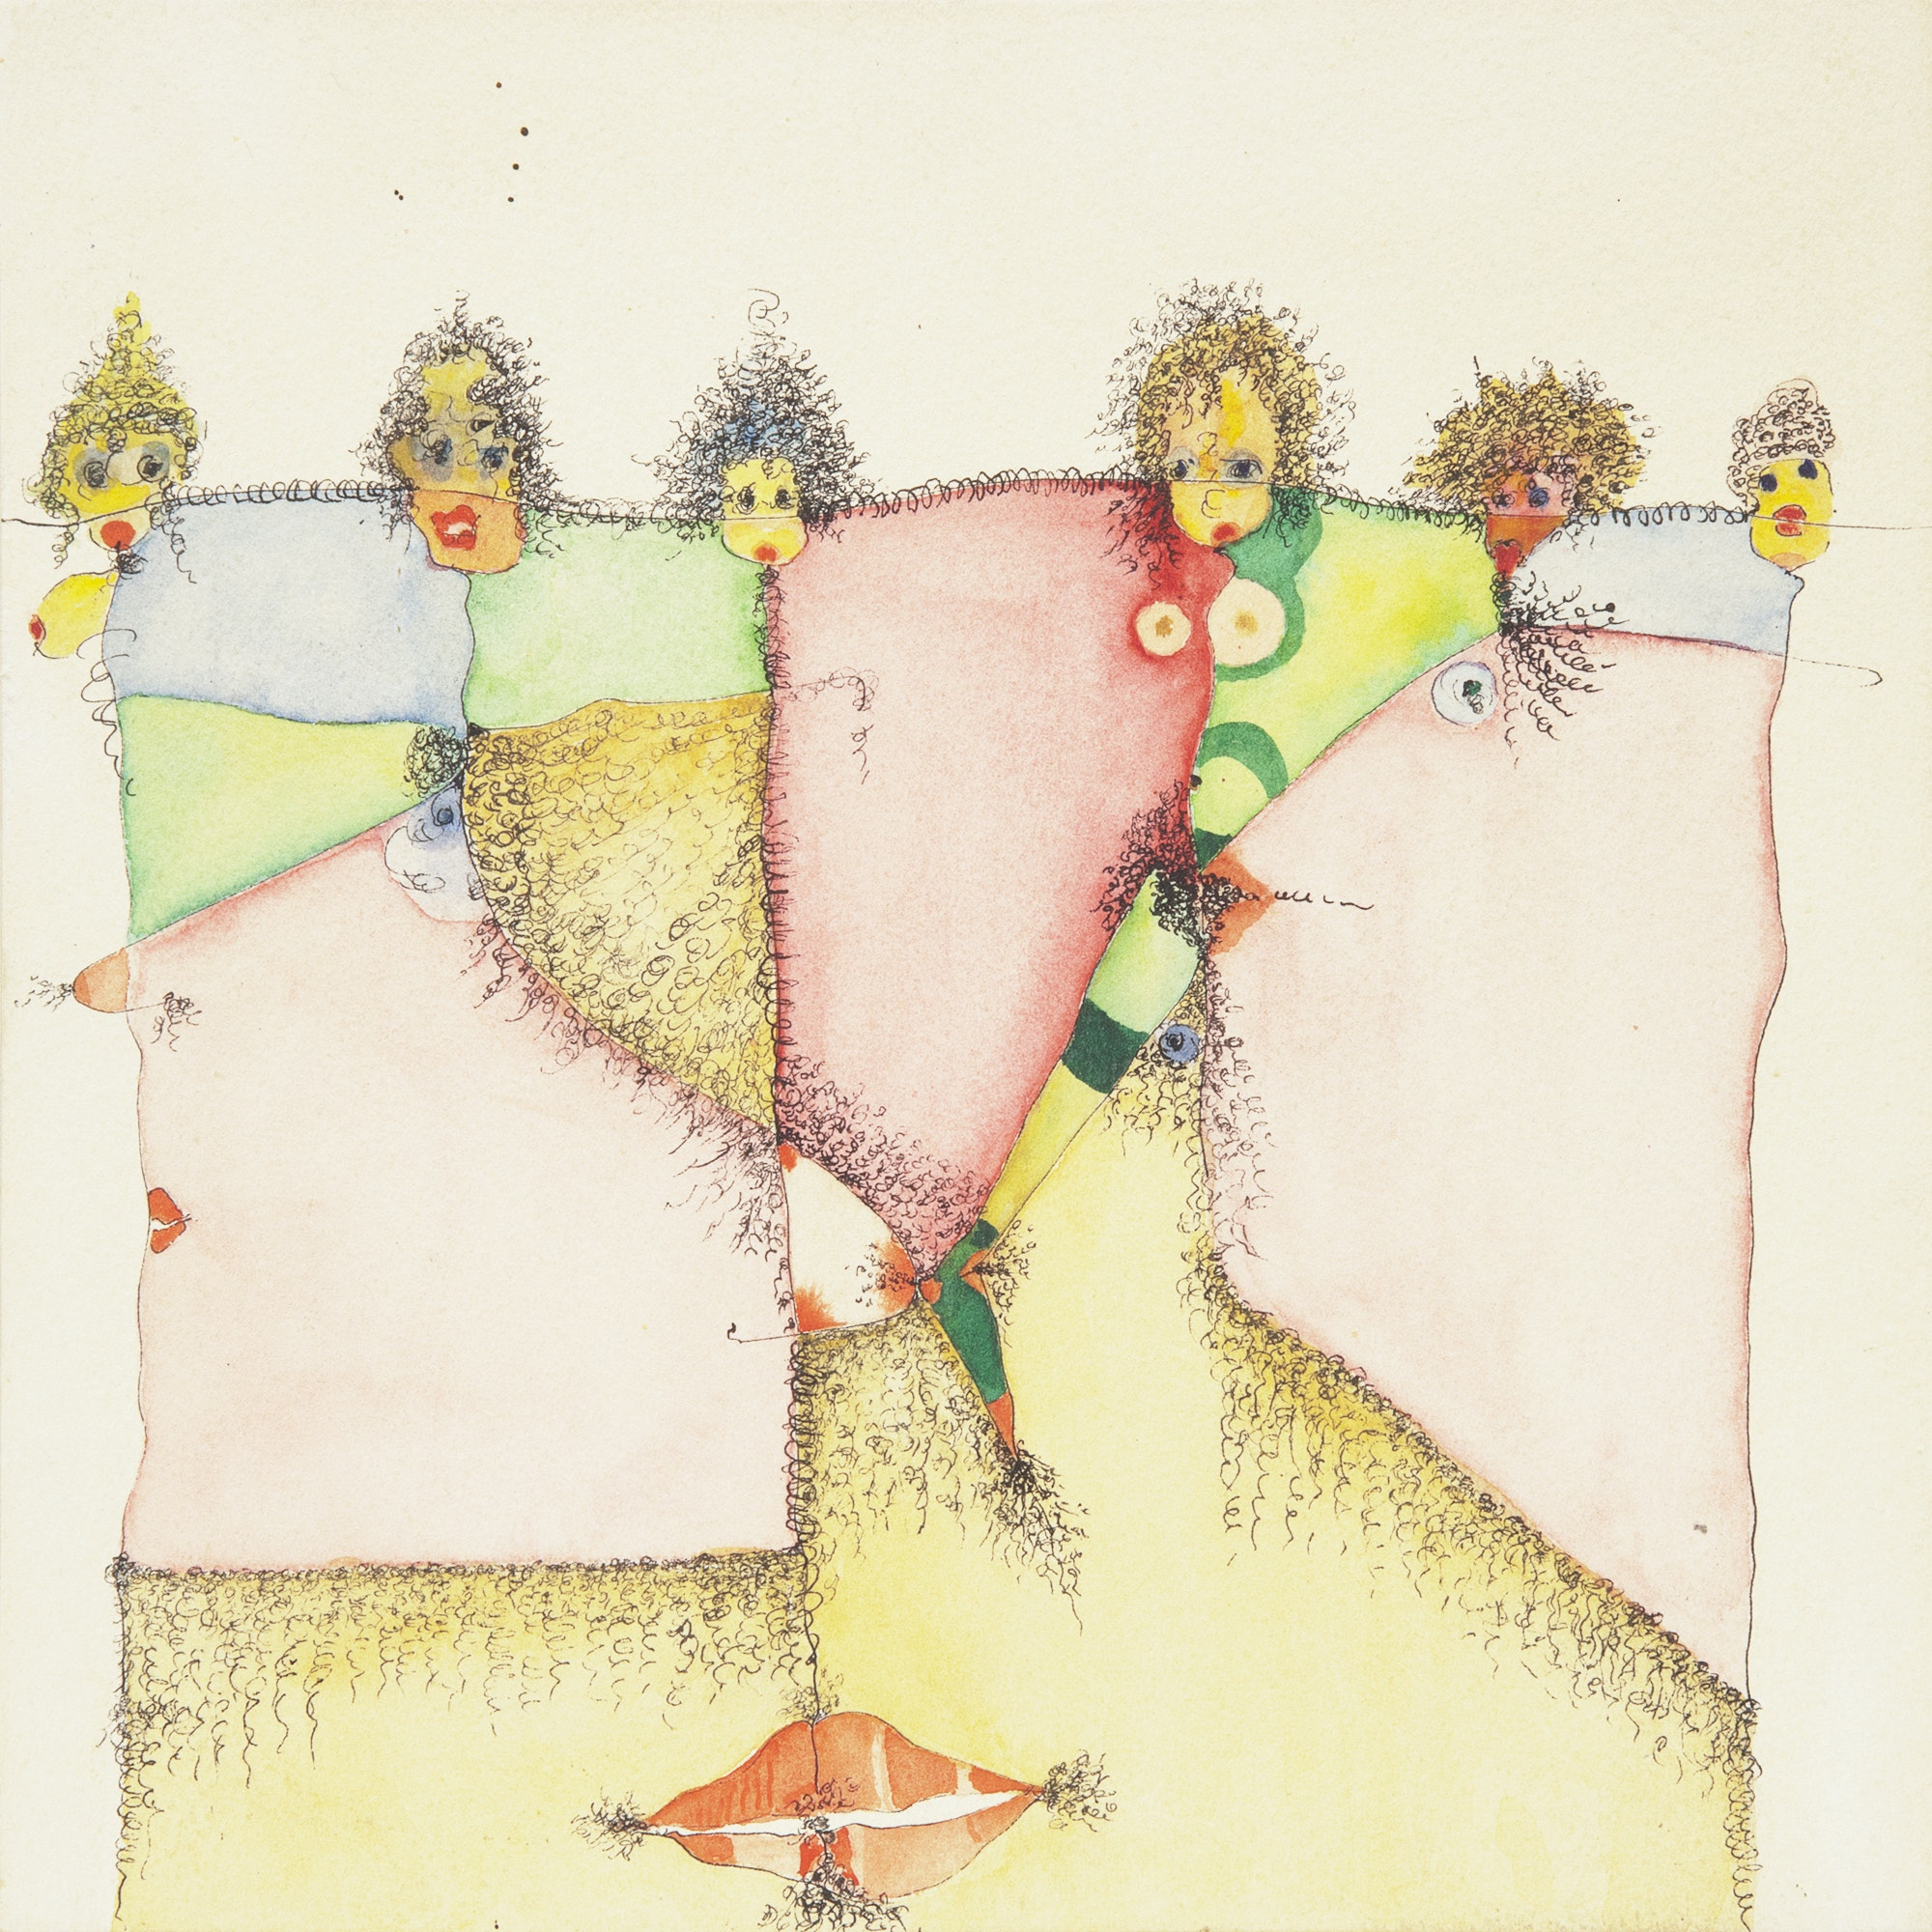 Huguette Caland, <em>Homage to Pubic Hair,</em> 1992. Mixed media on paper mounted on panel, 10 x 10 inches . C